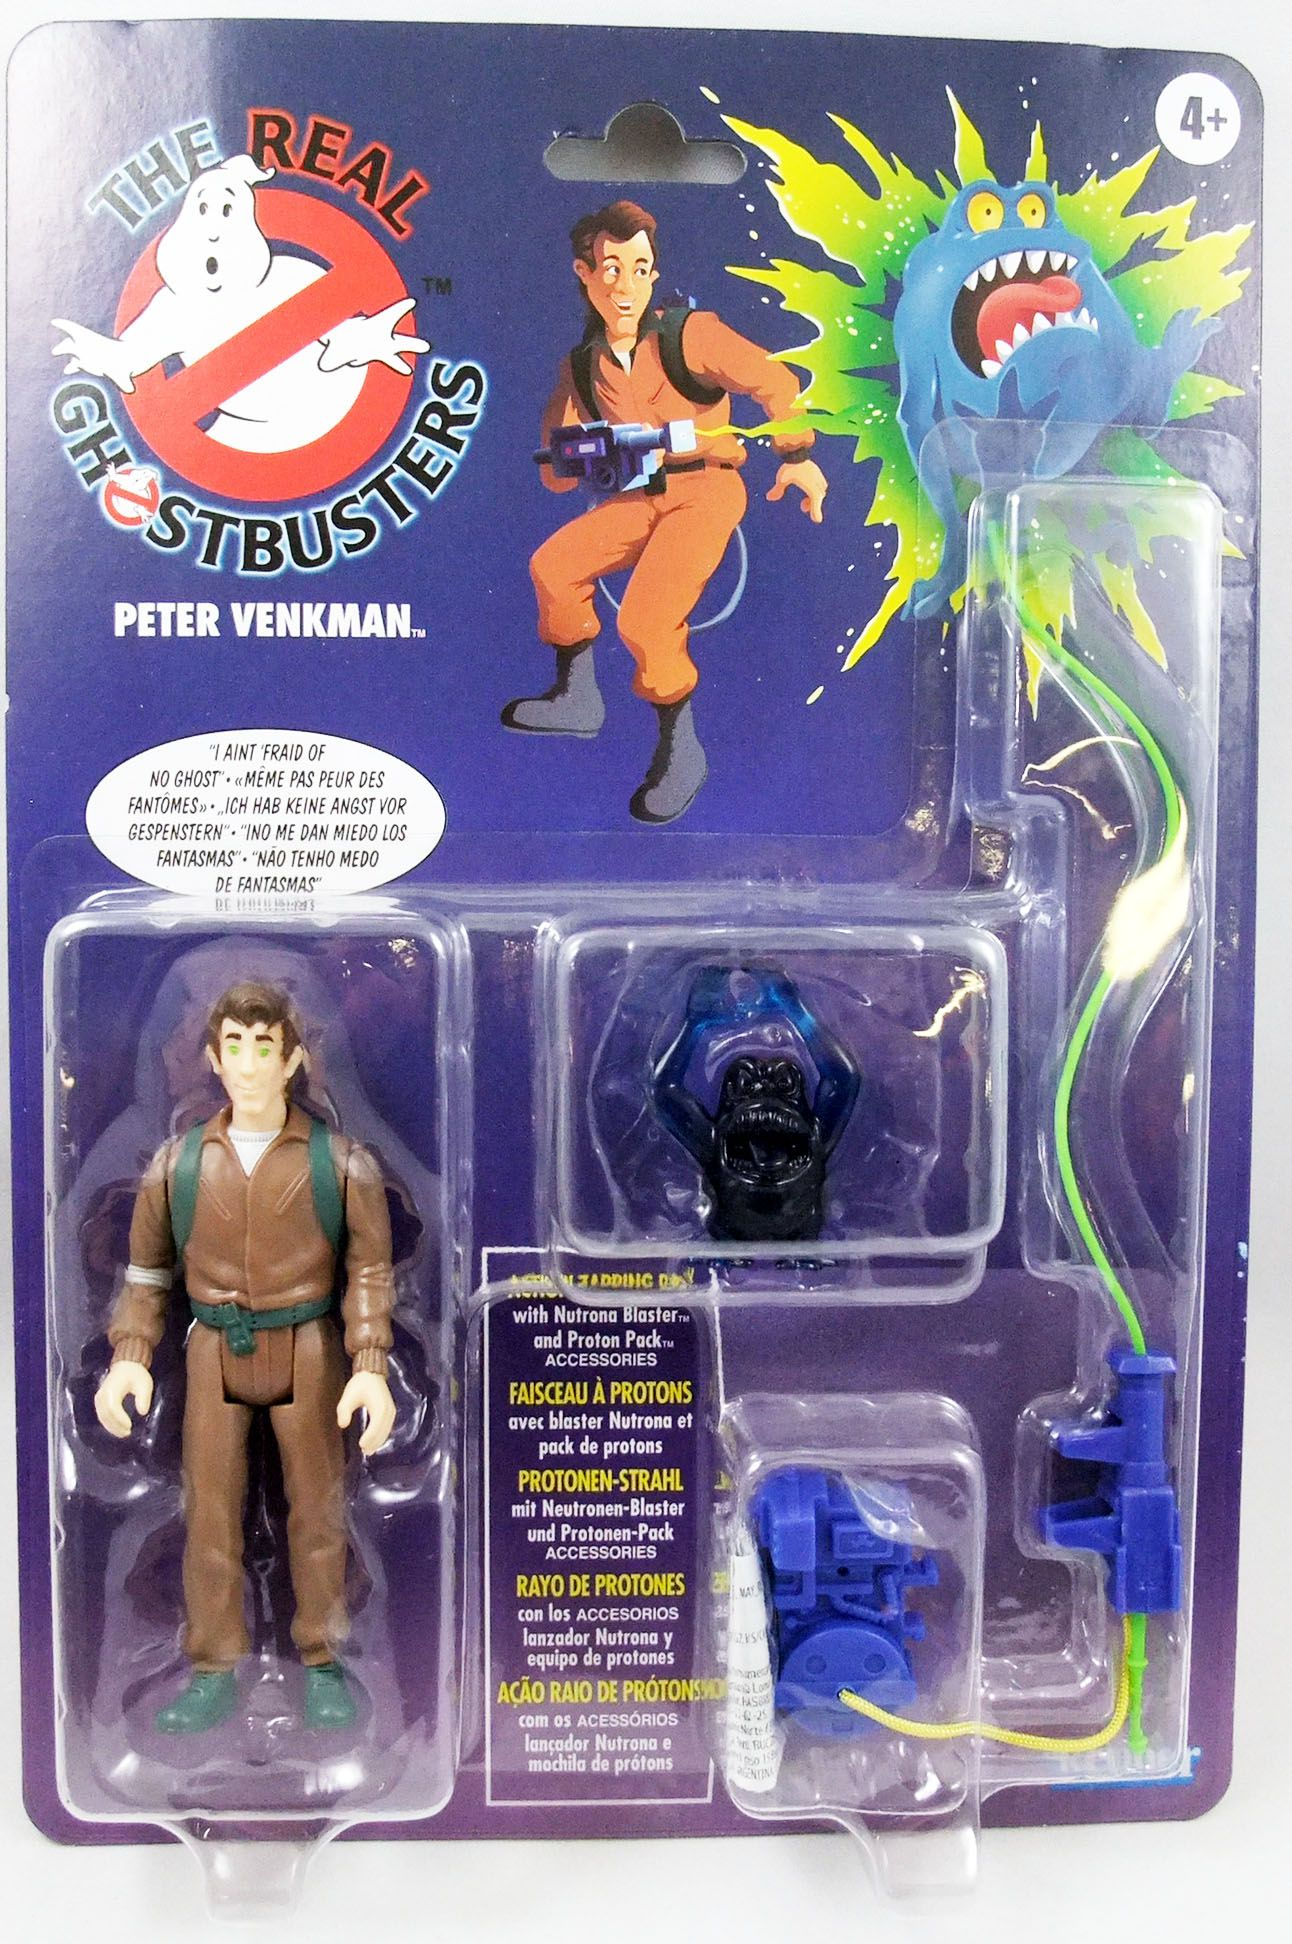 GHOSTBUSTERS VINTAGER- KENNER GHOST REPLACEMENT PART -ECTO 500